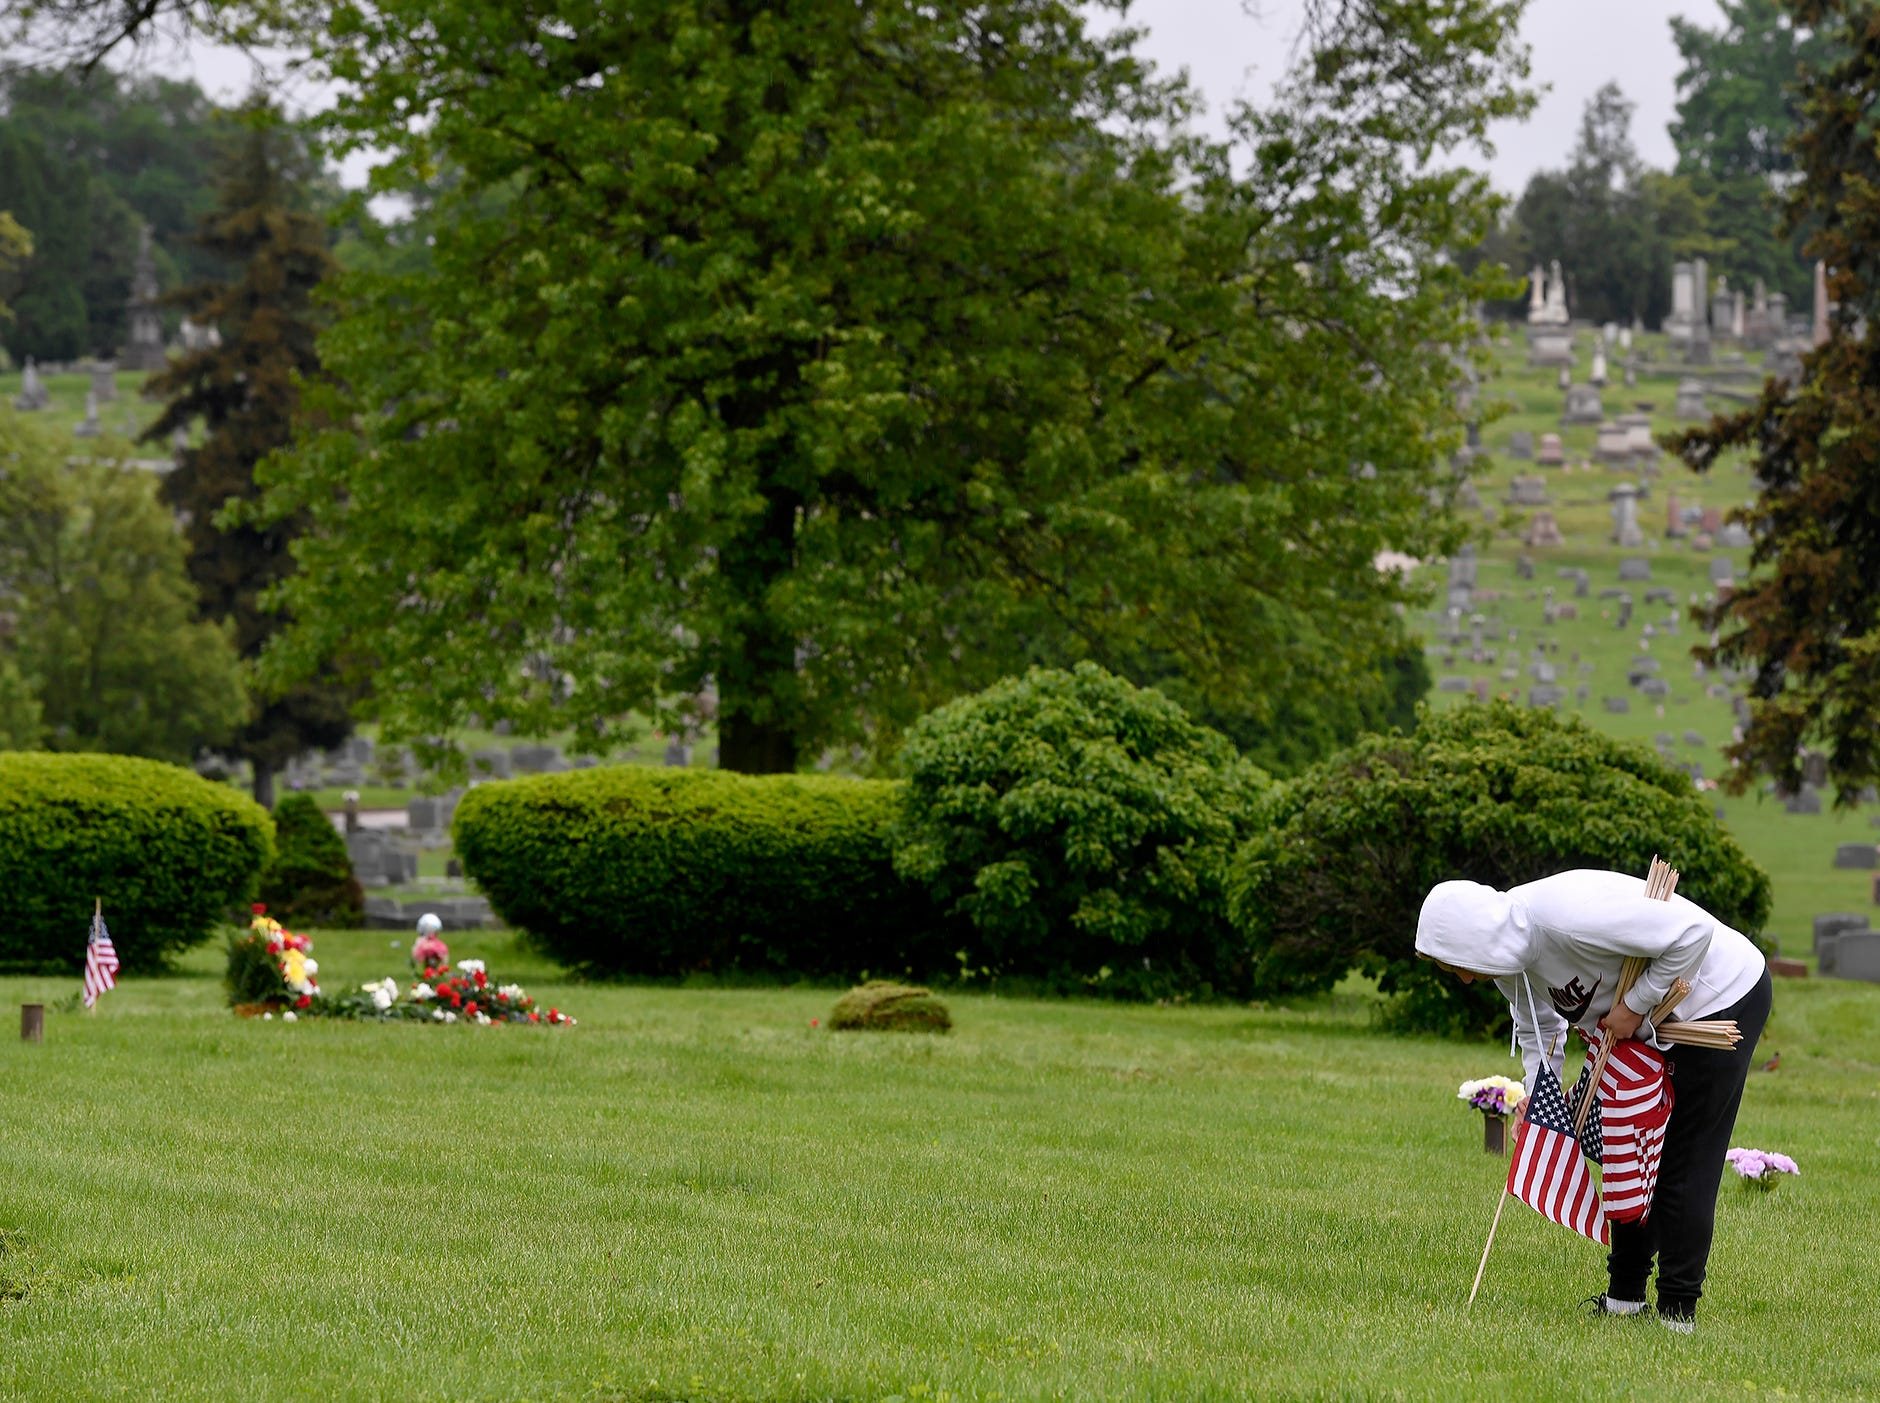 DeVaughn Clauser 15, helps Gold Star mother Deb Etheridge, not shown, place flags on veteran graves at Prospect Hill Cemetery in preparation for Memorial Day, Monday, May 13, 2019. Clauser and two other National Honors Society members from Dover High School assisted in the flag placing.John A. Pavoncello photo